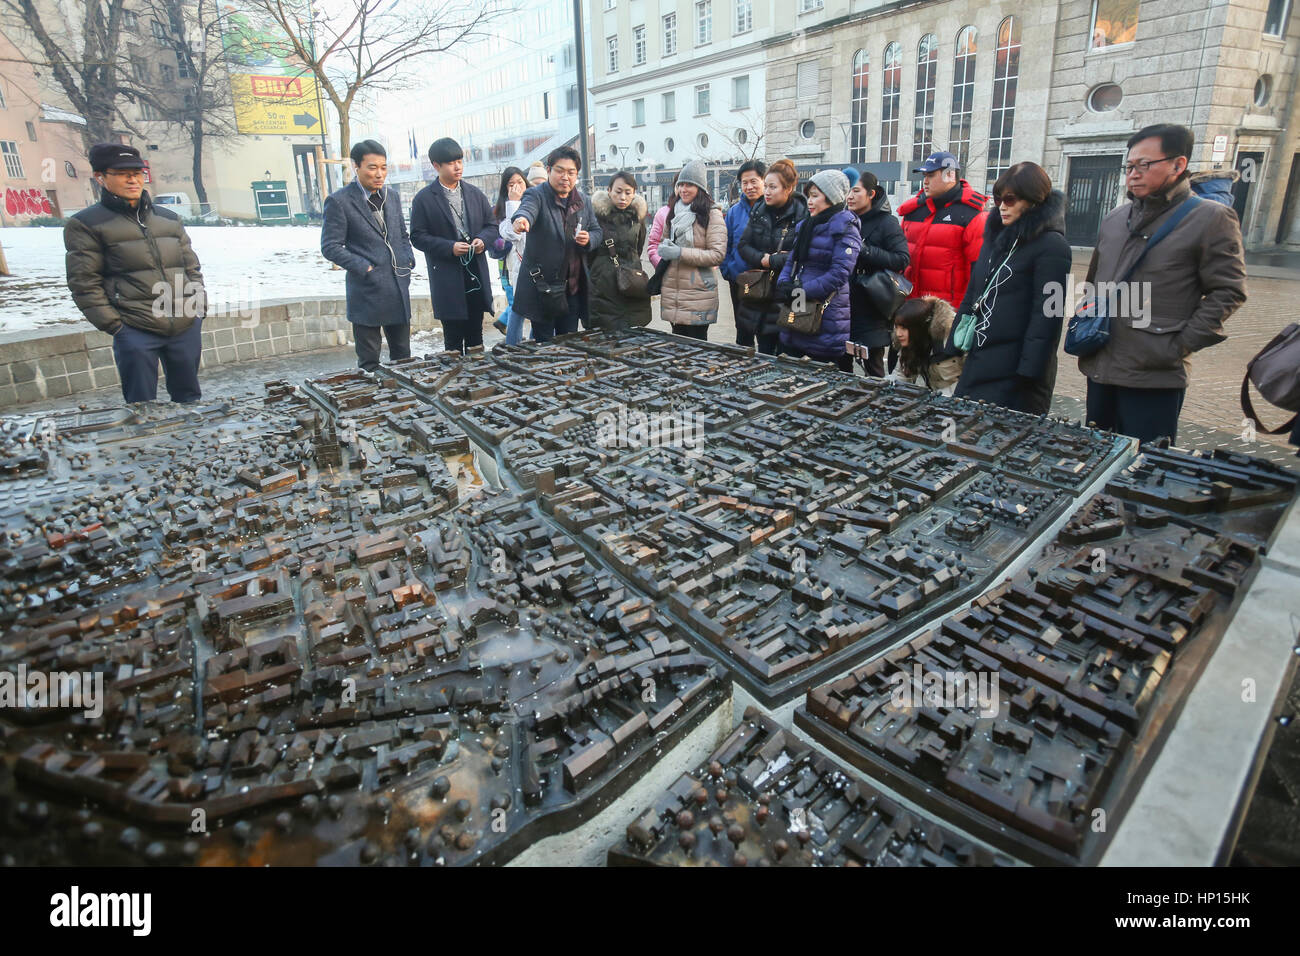 ZAGREB, CROATIA - JANUARY 15, 2017 : Tourists sightseeing the scale model of Zagreb city exhibited at the European Stock Photo